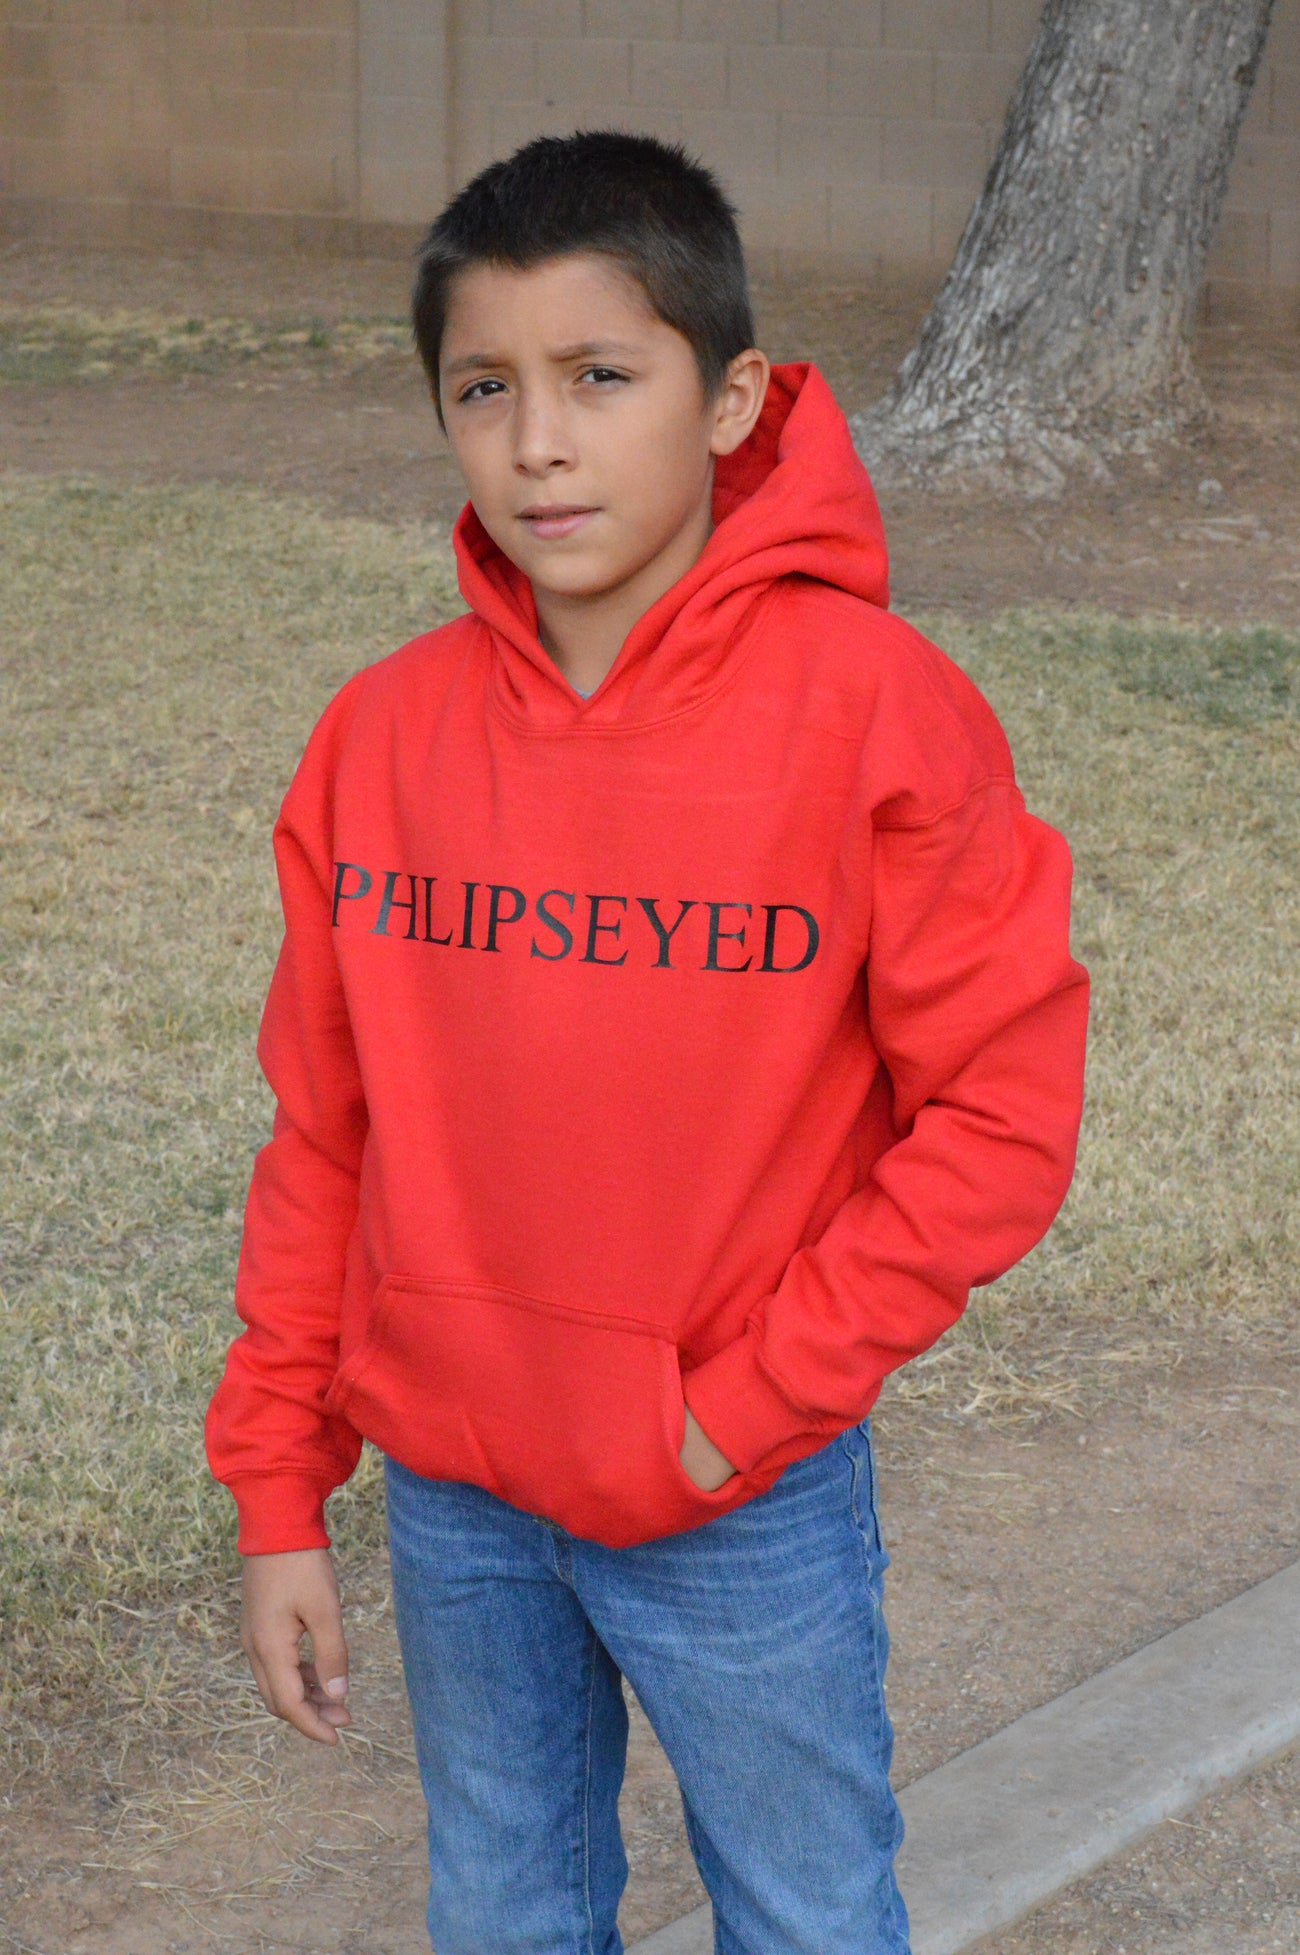 Phlipseyed Classic Youth Hooded Sweatshirt Red/Black